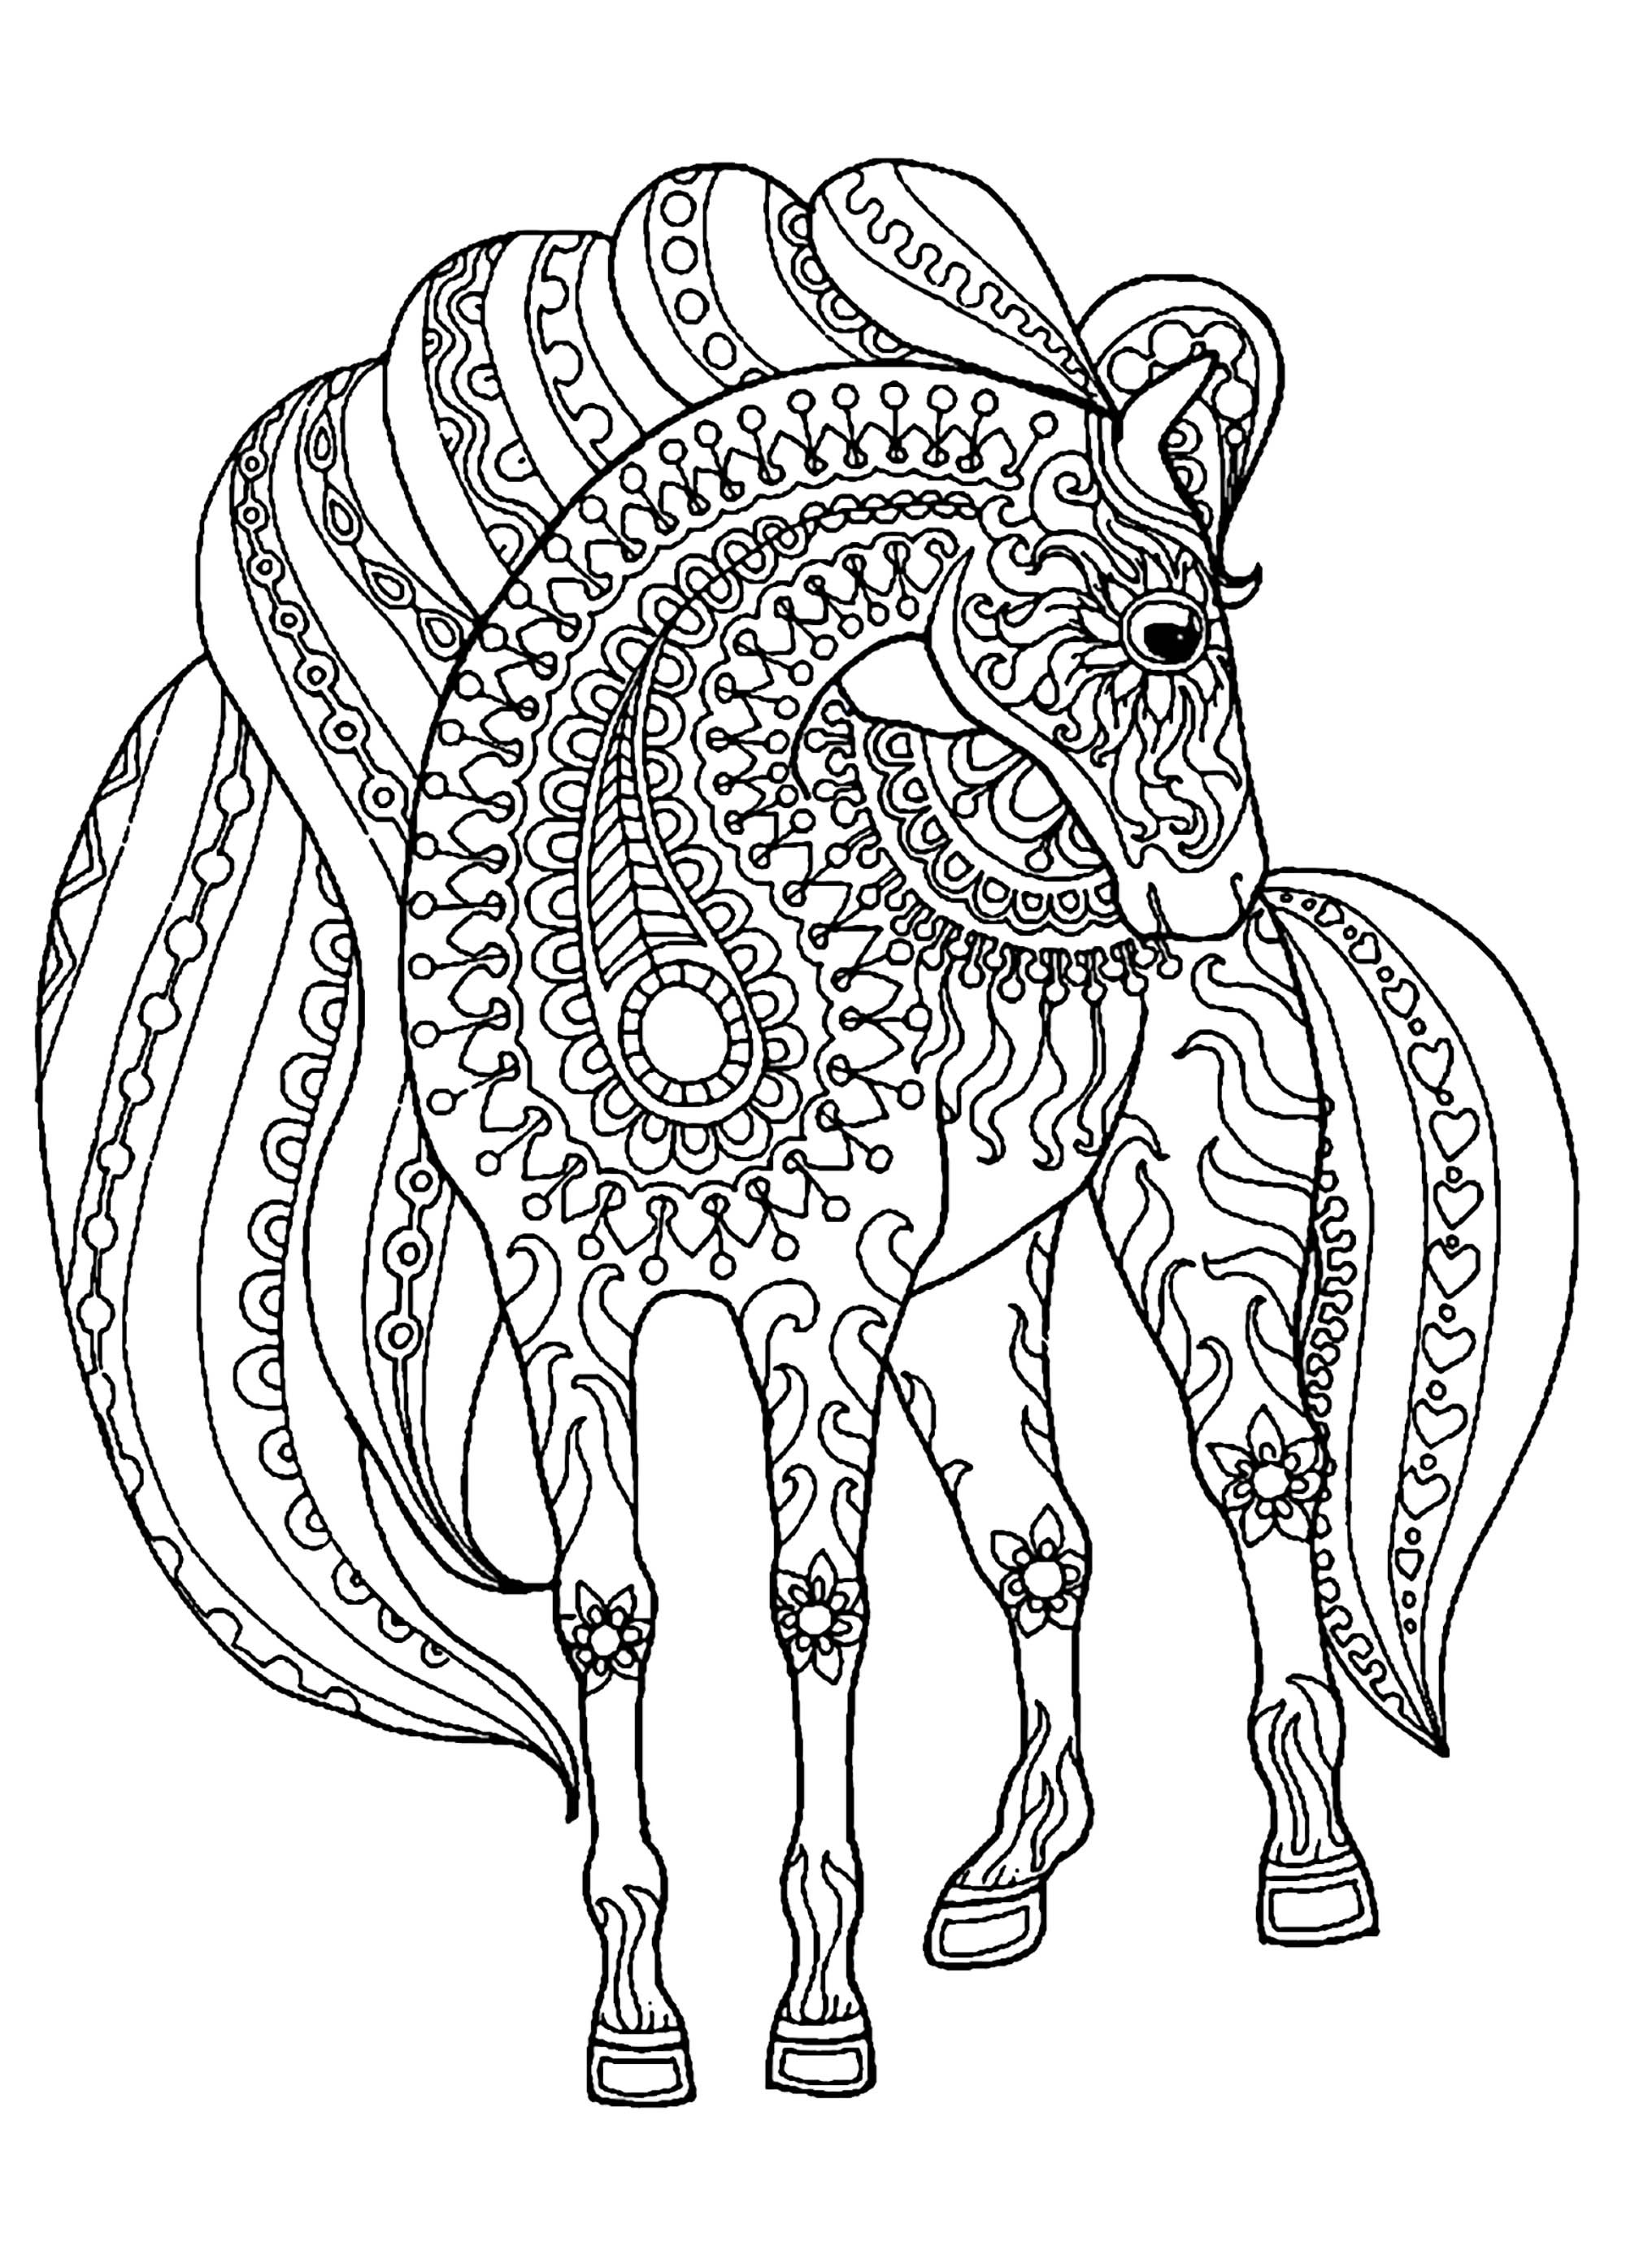 Best ideas about Horses Coloring Pages For Adults . Save or Pin Horse simple zentangle patterns Horses Adult Coloring Pages Now.